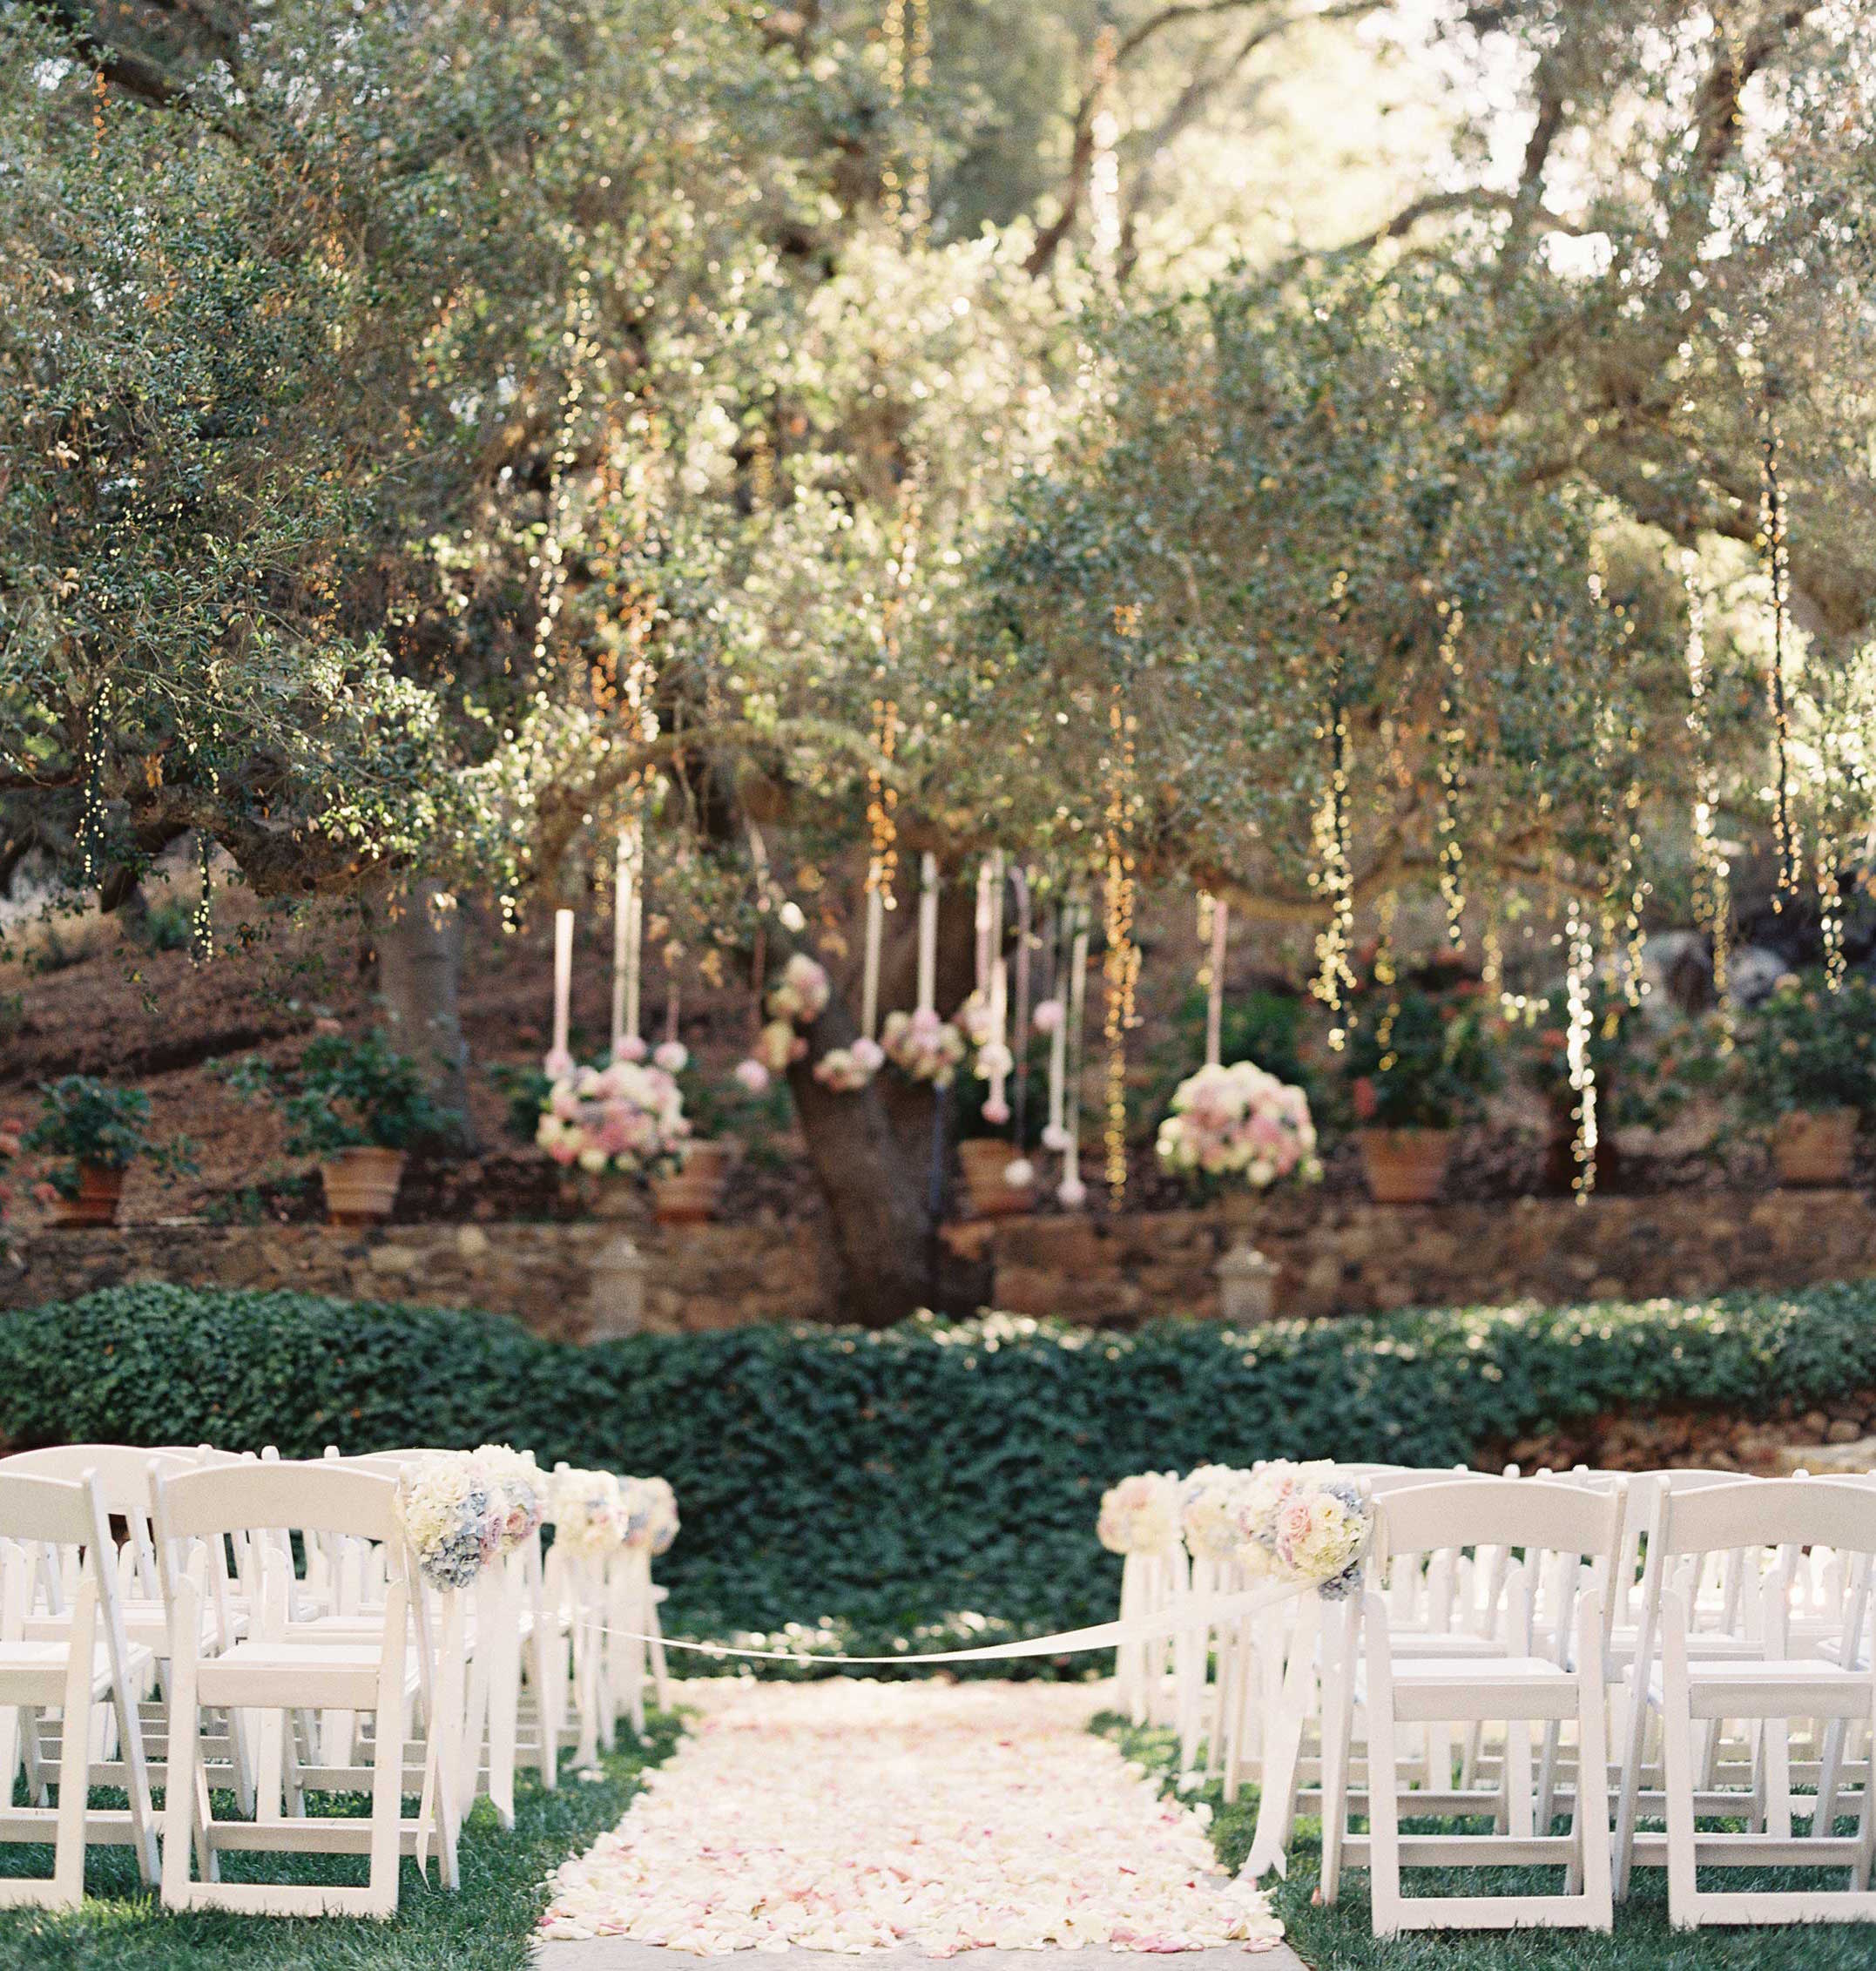 20 Outdoor Ceremonies That Will Make You Rethink Your